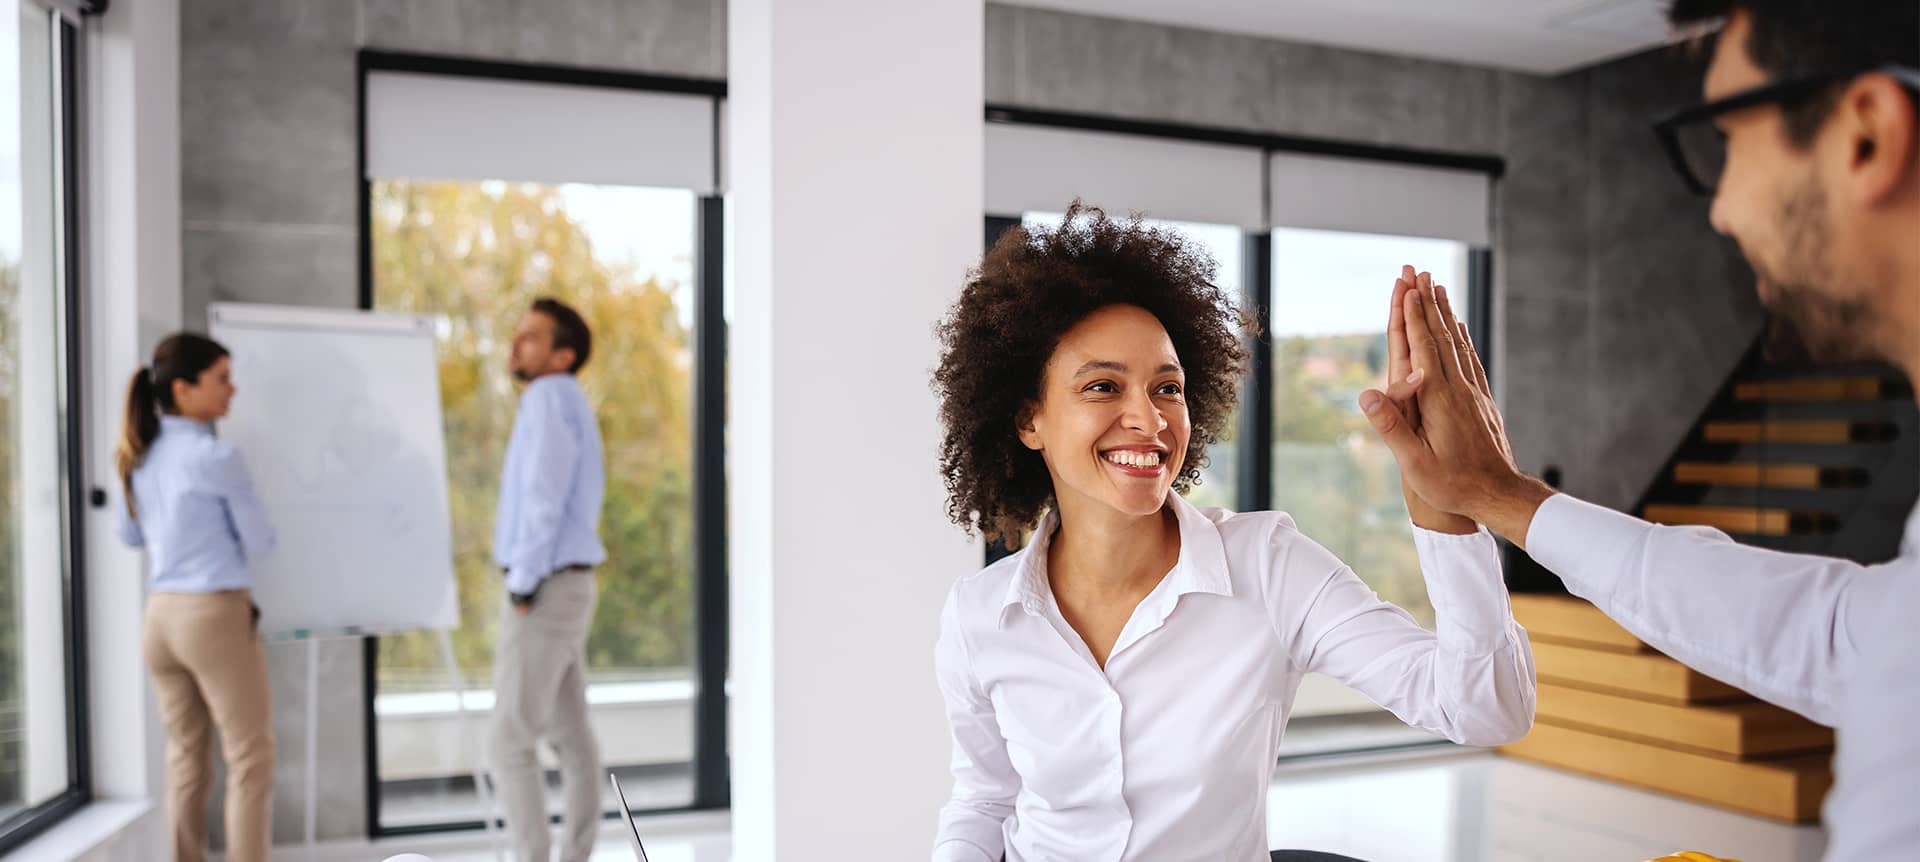 Two employees female and male, high fiving each other at the office.